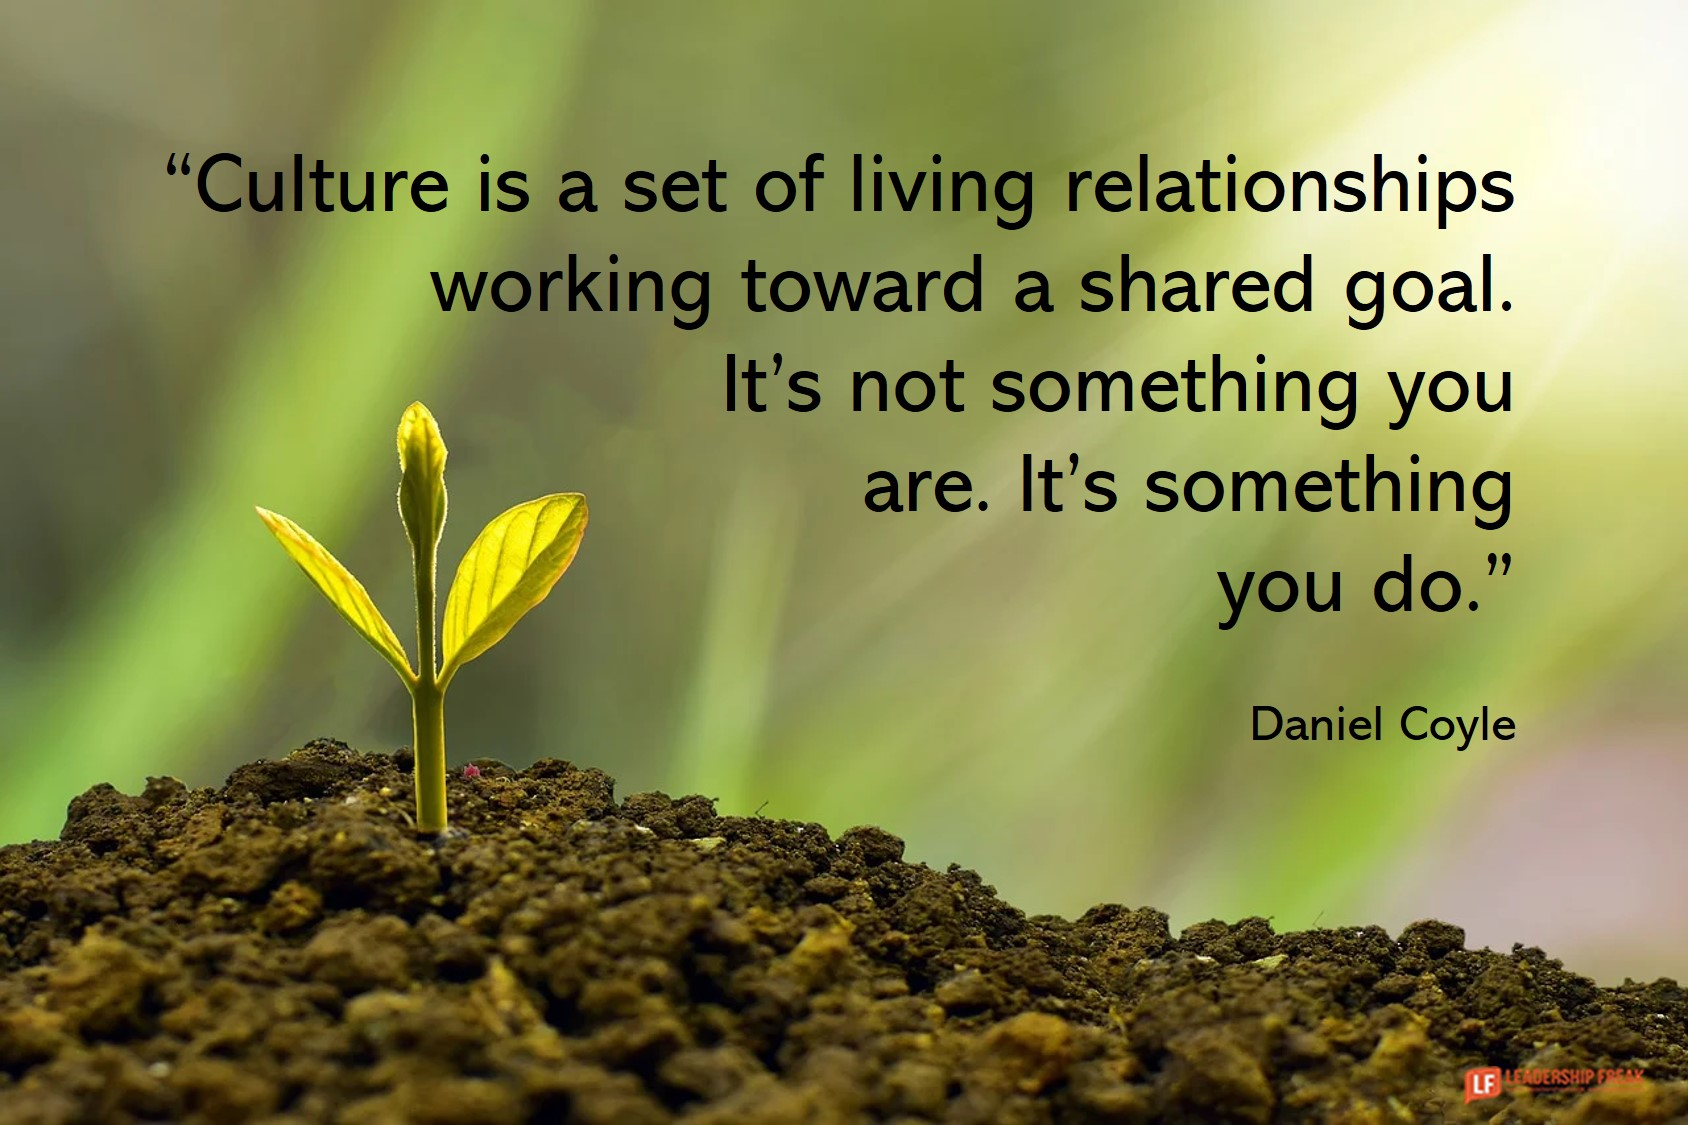 culture is a set of living relationships working toward a shared goal - It's not something you are - It's something you do